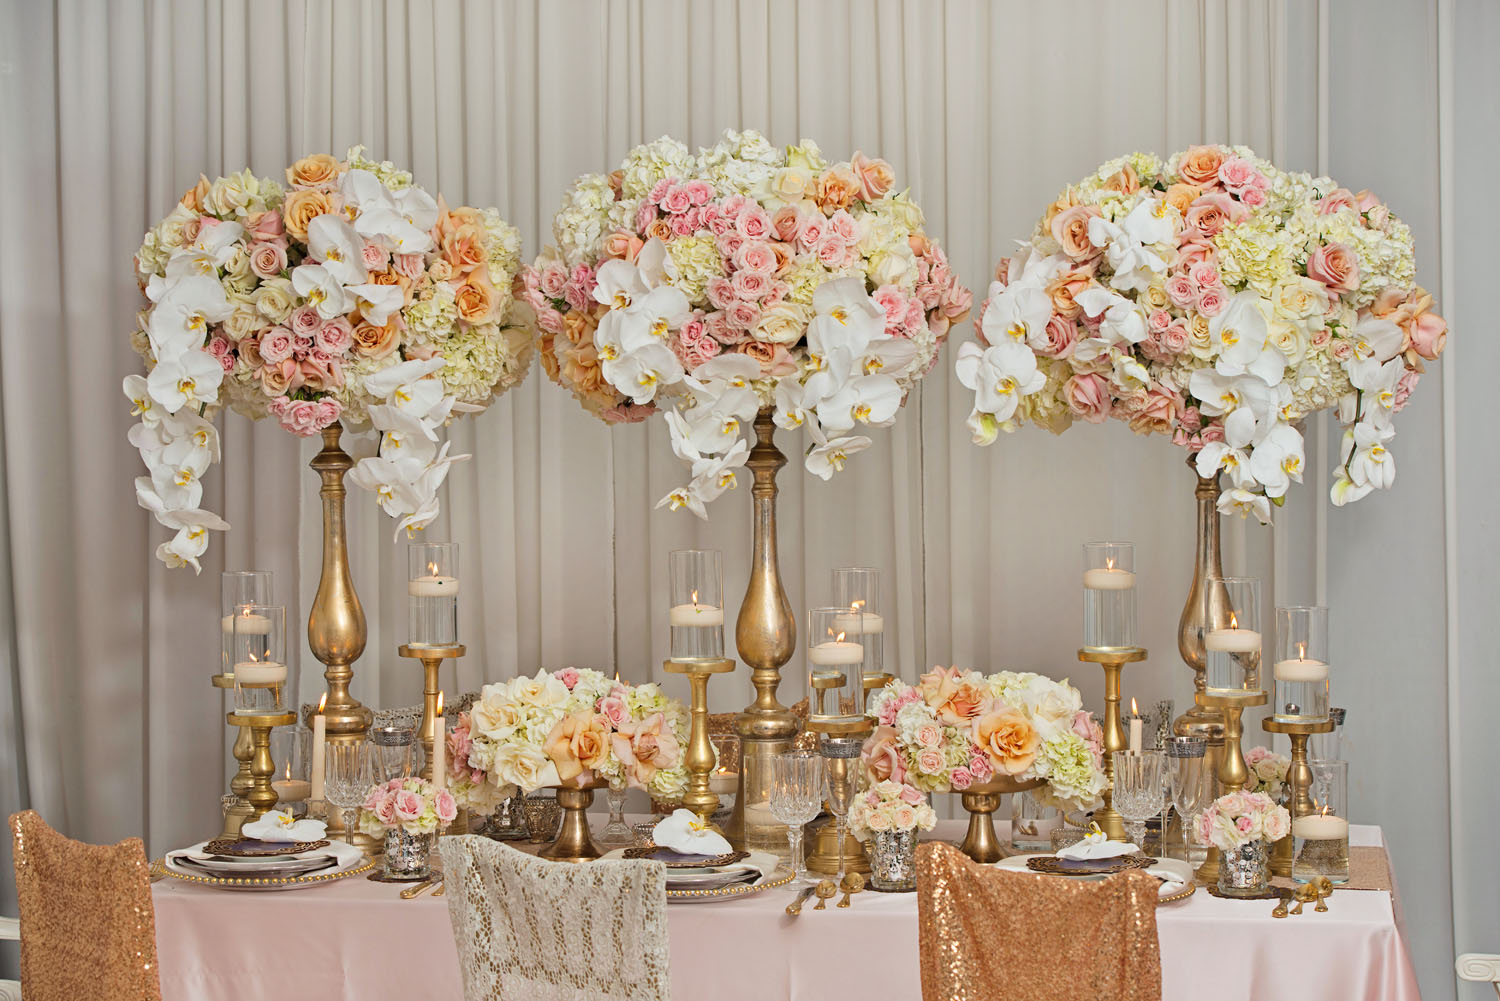 tristate_wedding_and_event_design.jpg